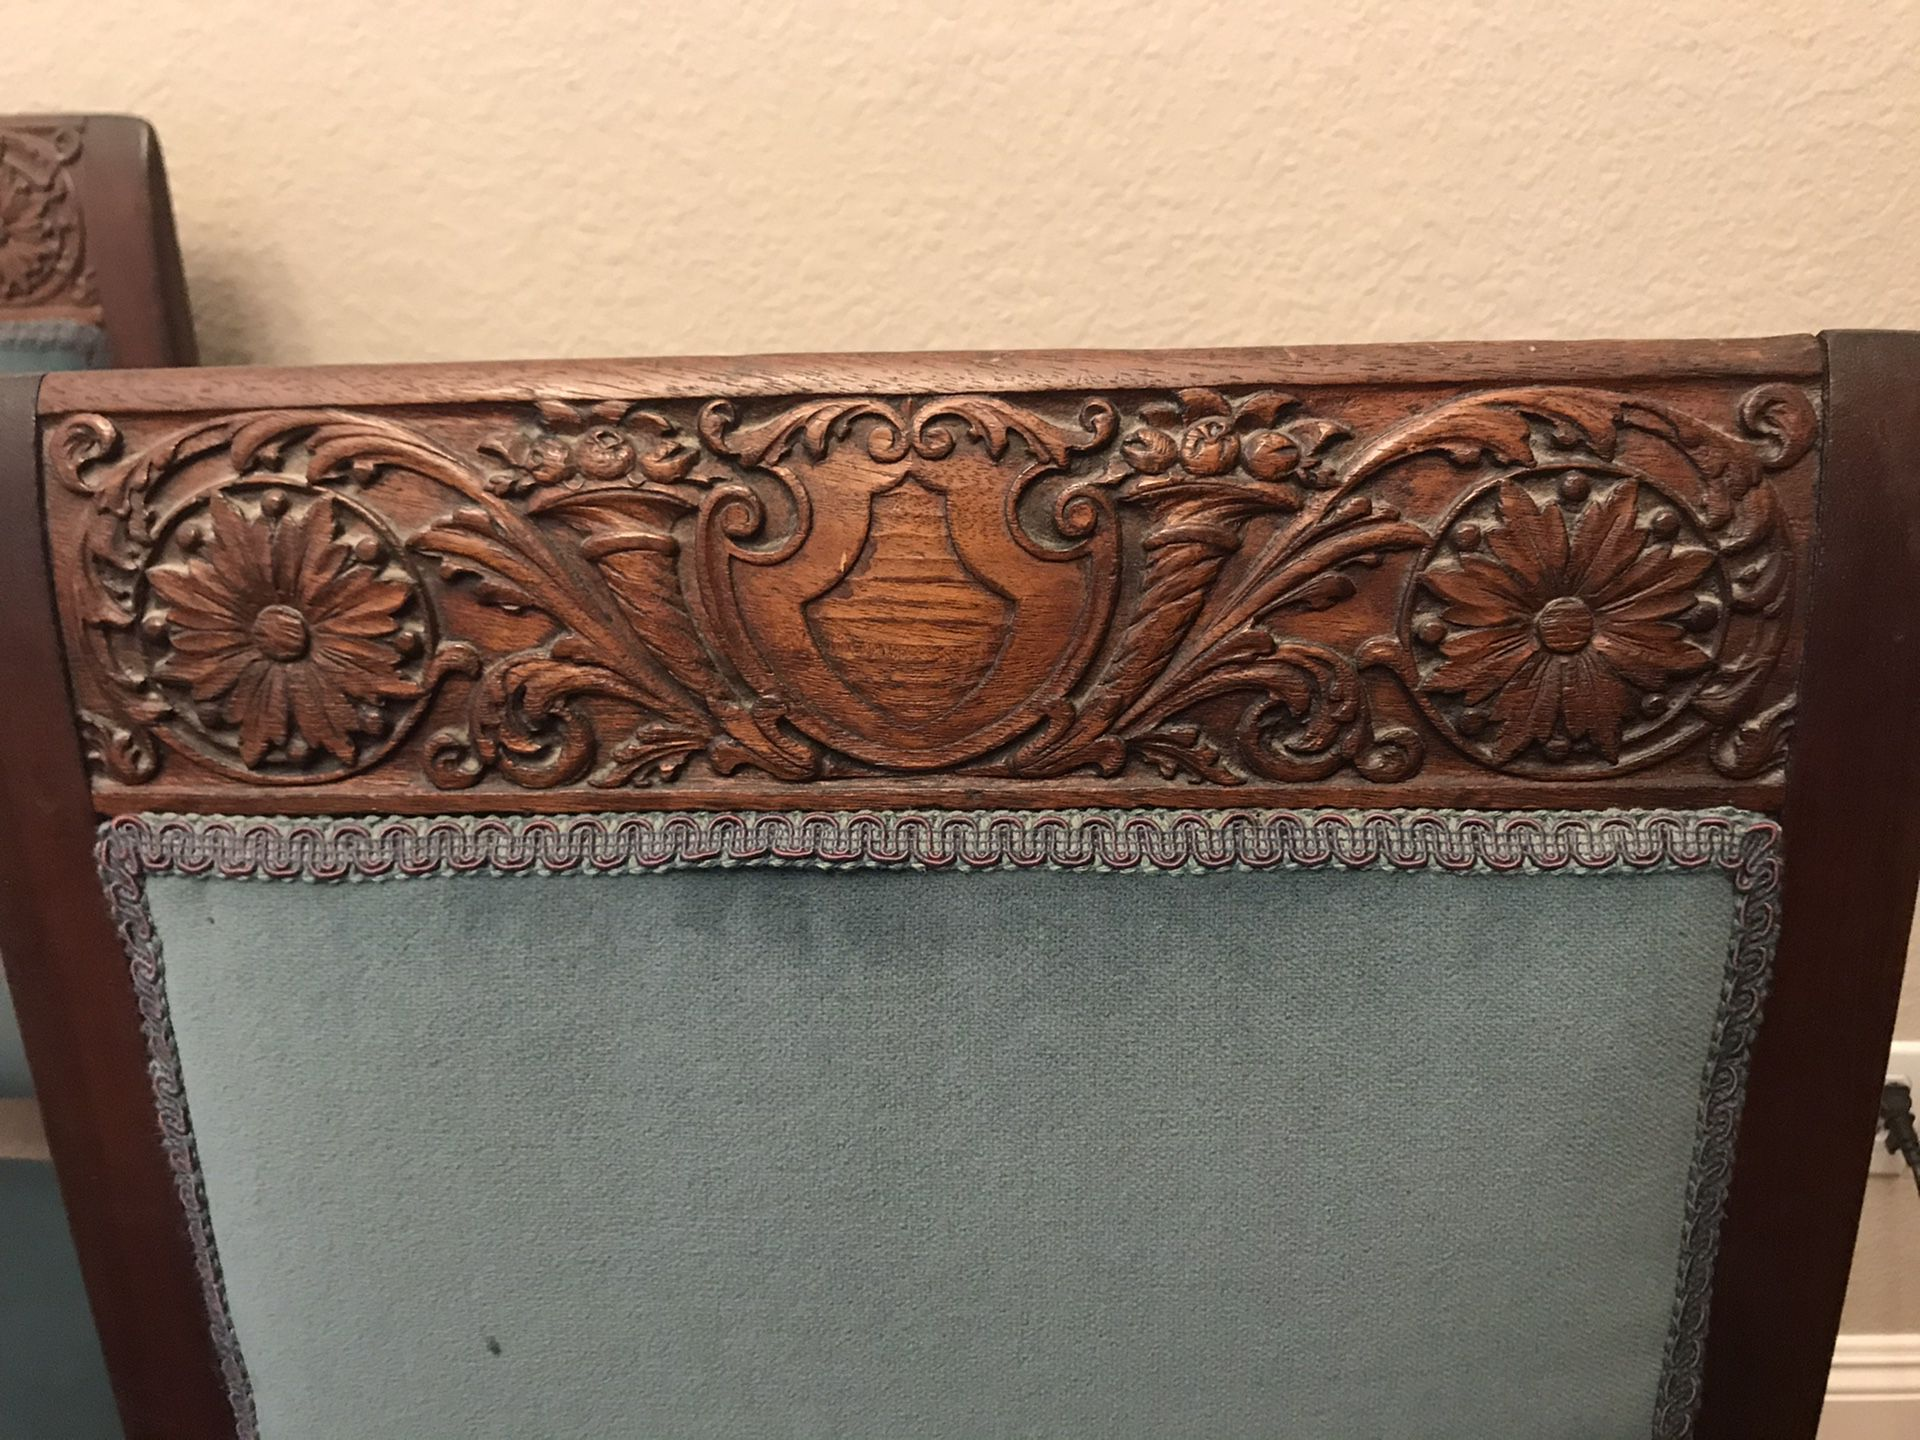 Antique dining table and 6 chairs. Slight repair needed on one chairs upholstery coming loose from frame.